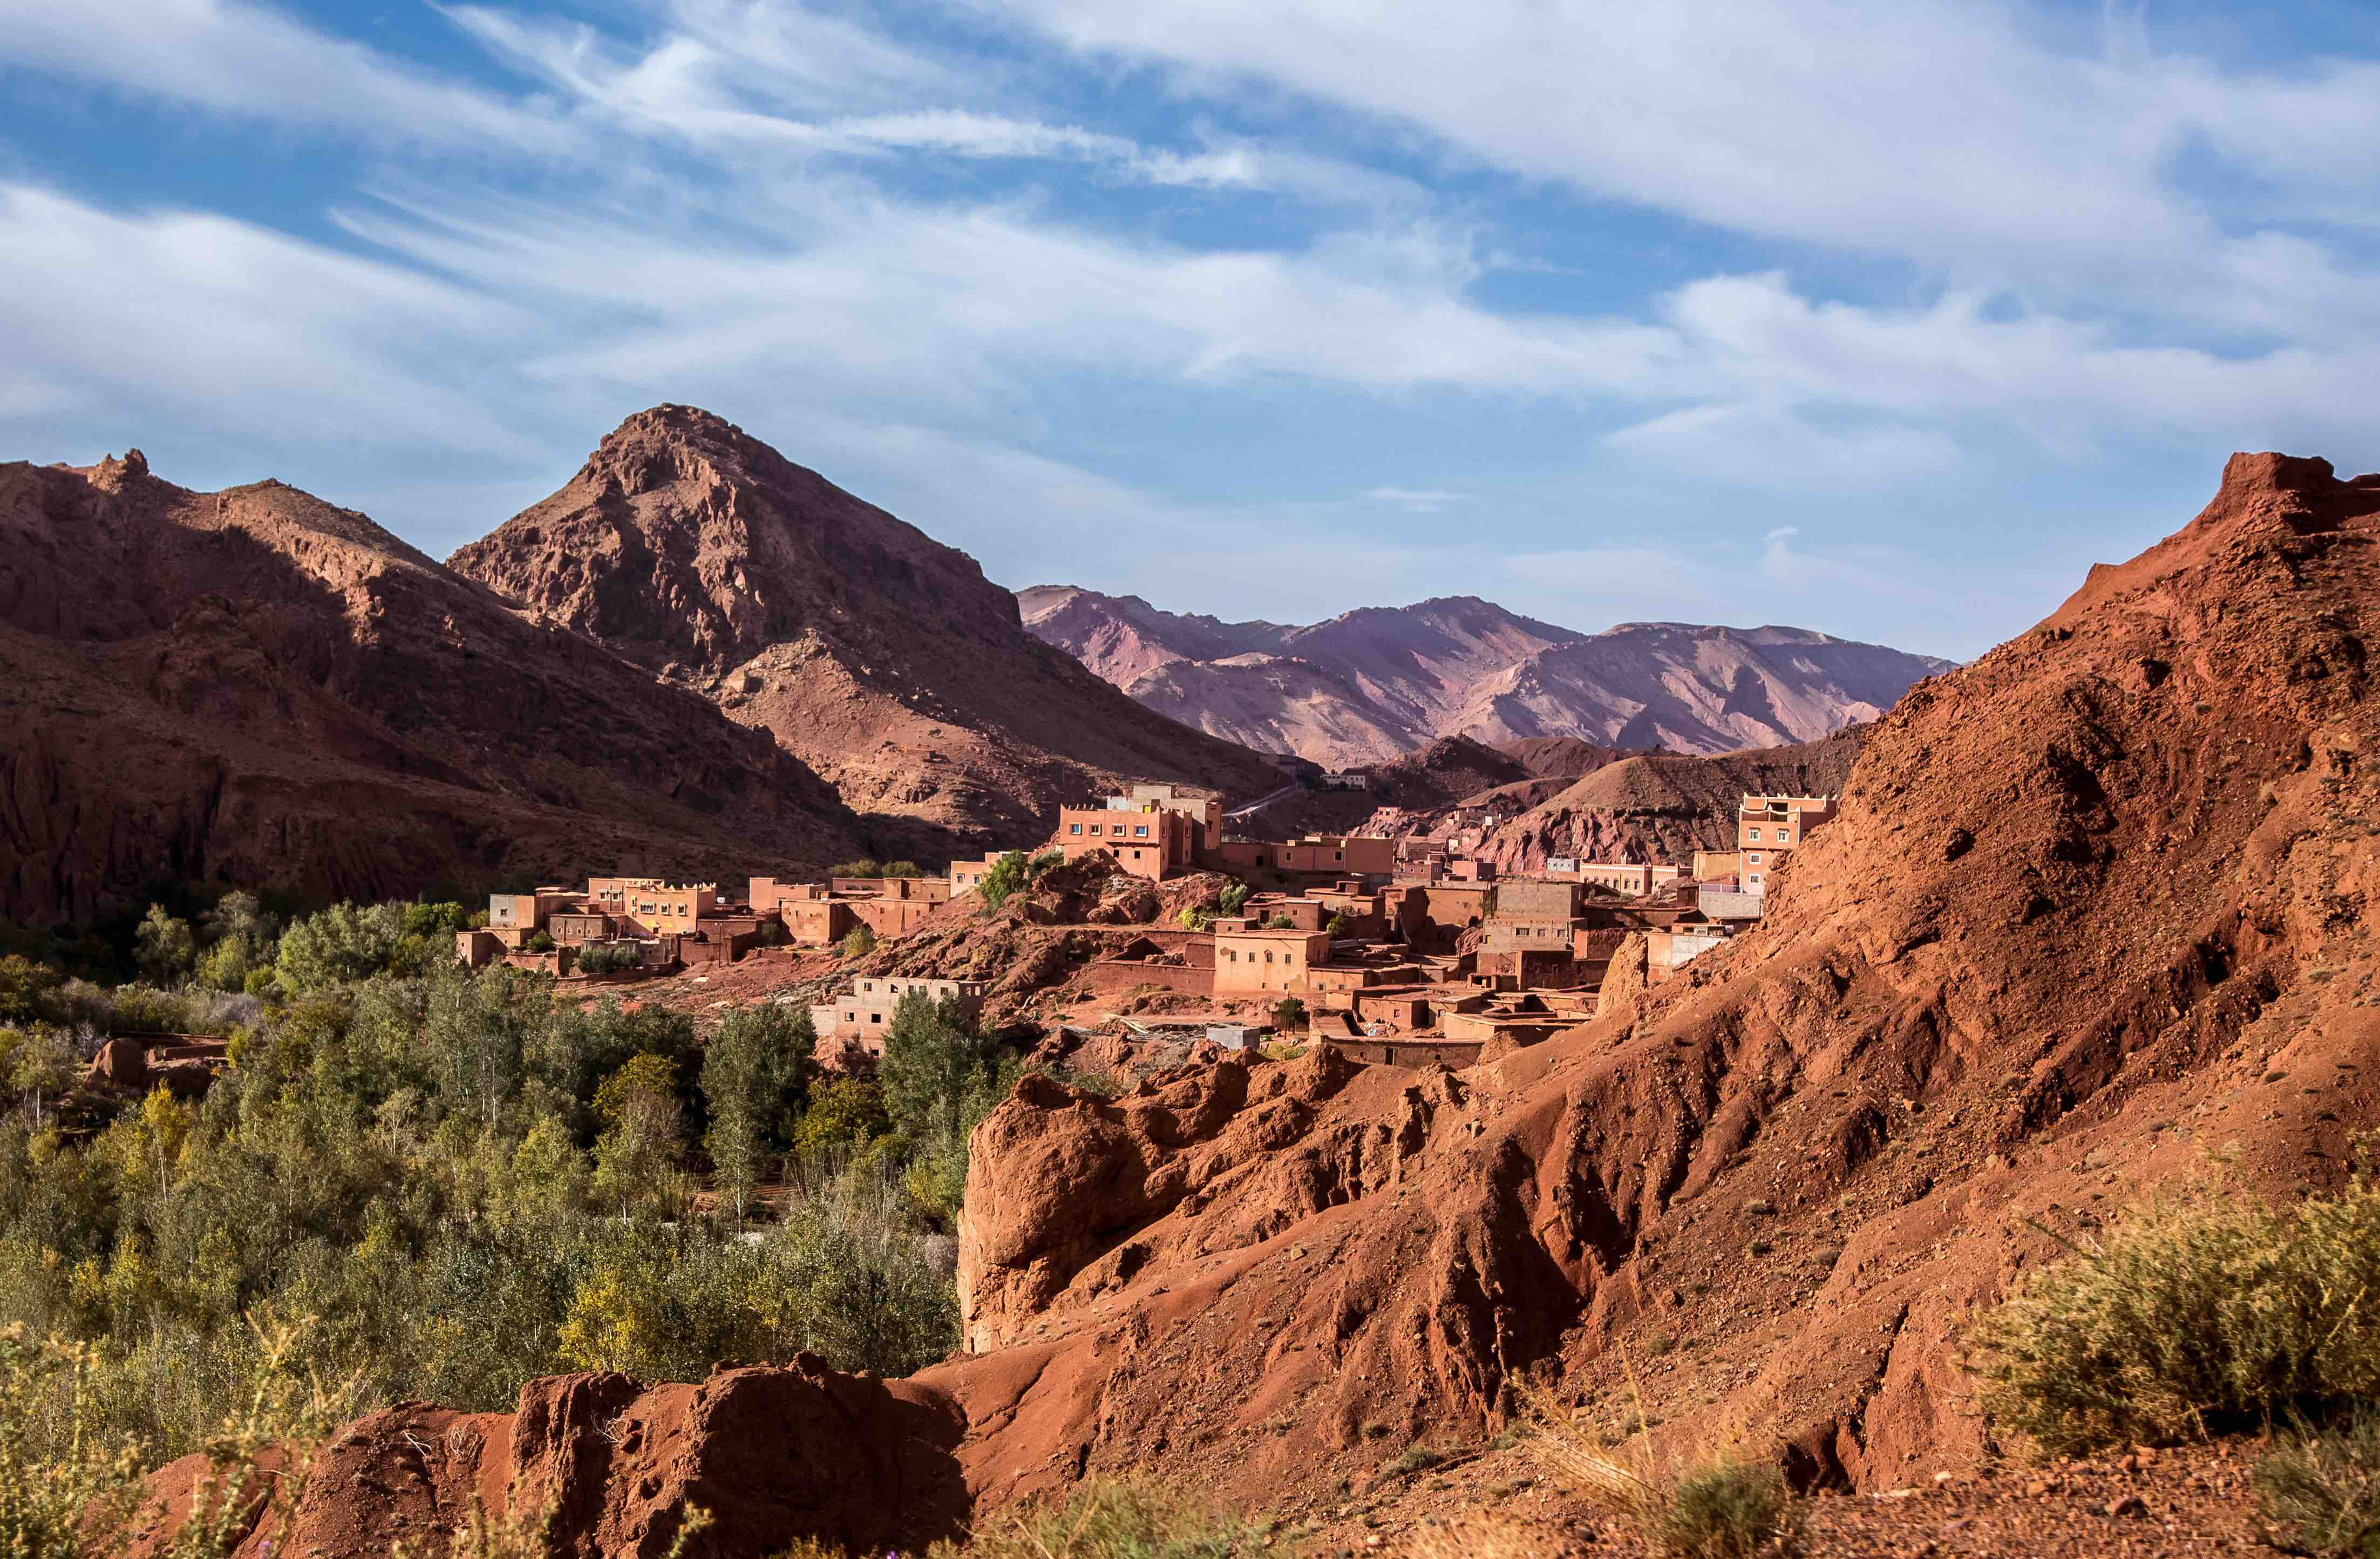 A traditional Moroccan village in the epic Atlas Mountains of Northern Africa.